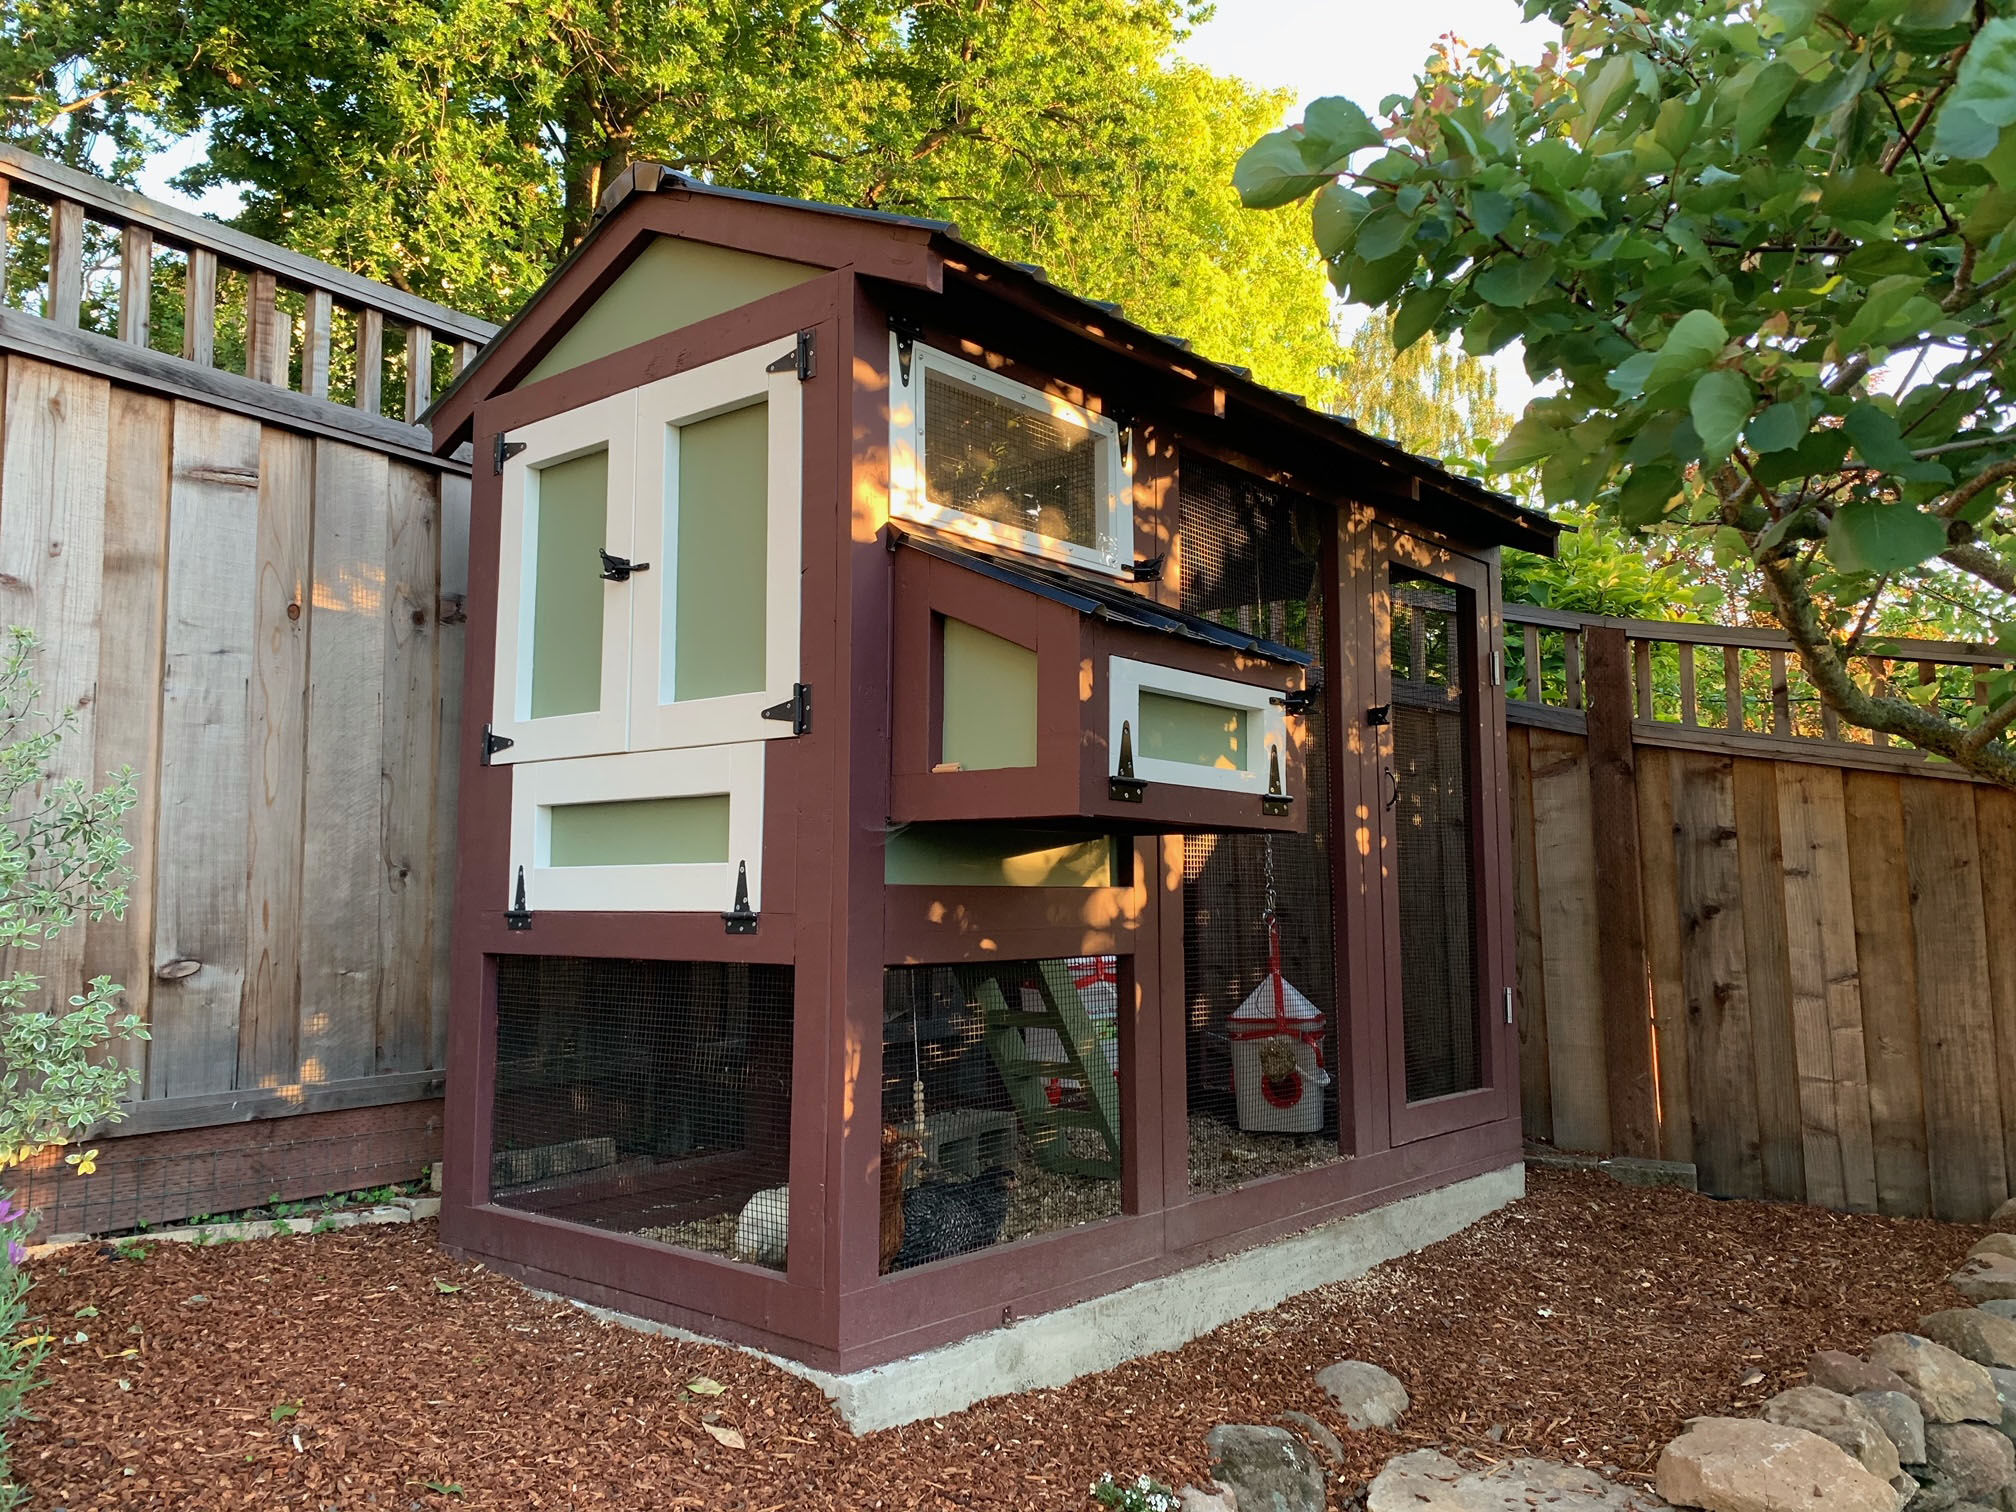 California Coop in Oakland California painted and assembled by customer